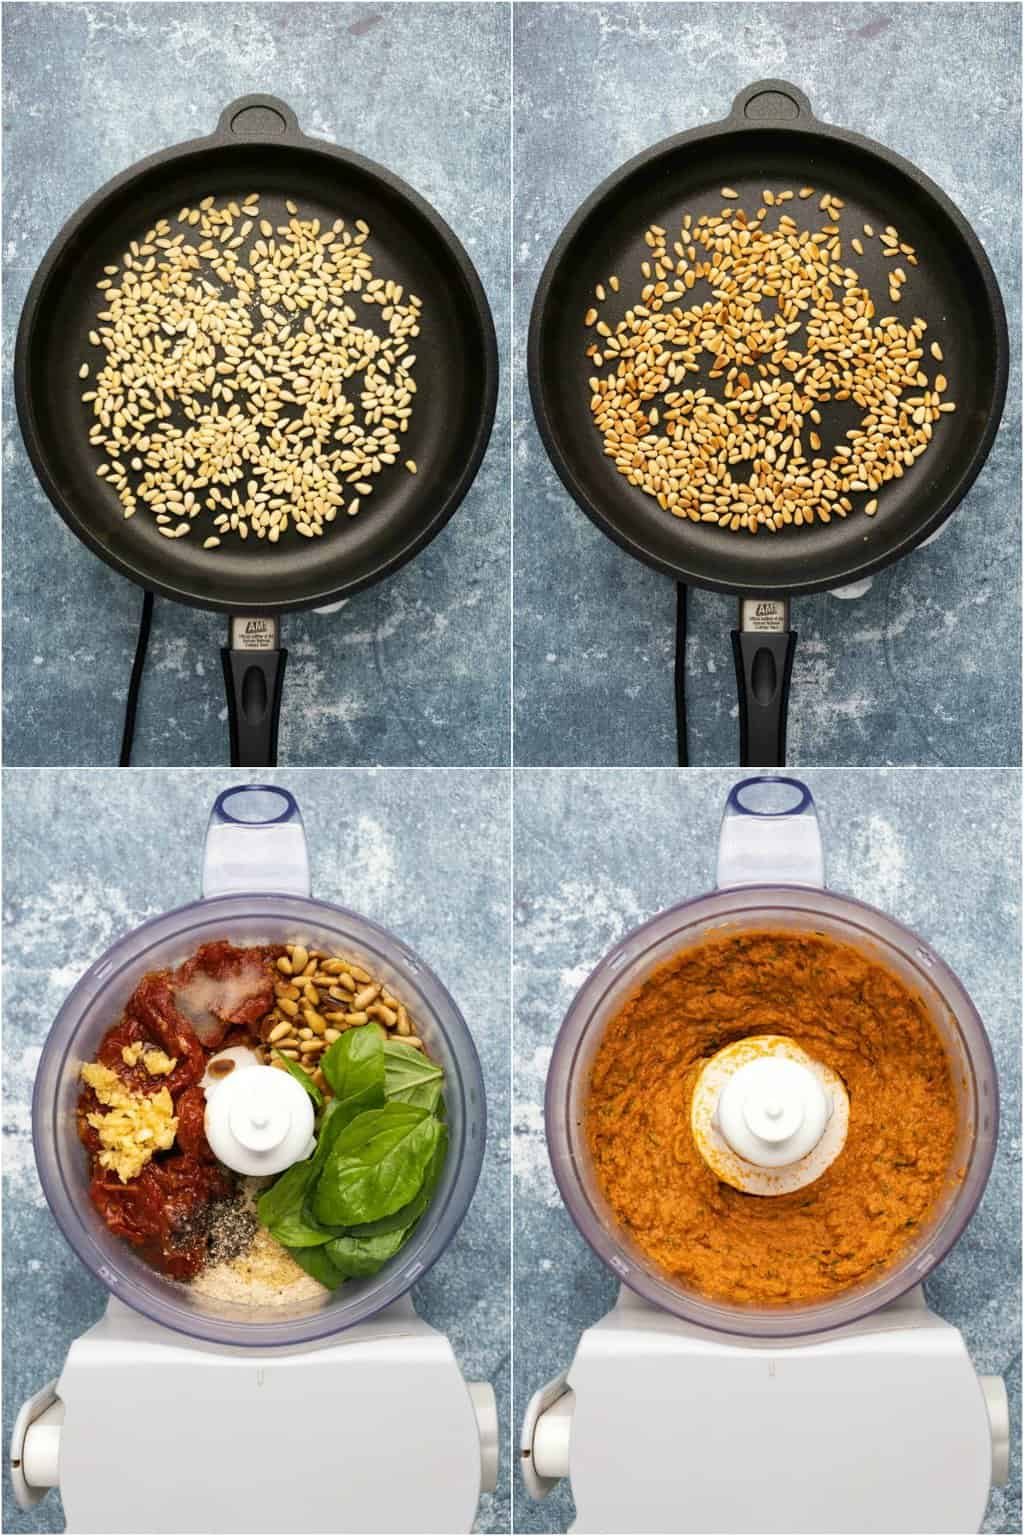 Step by step process photo collage of making a sun dried tomato pesto.